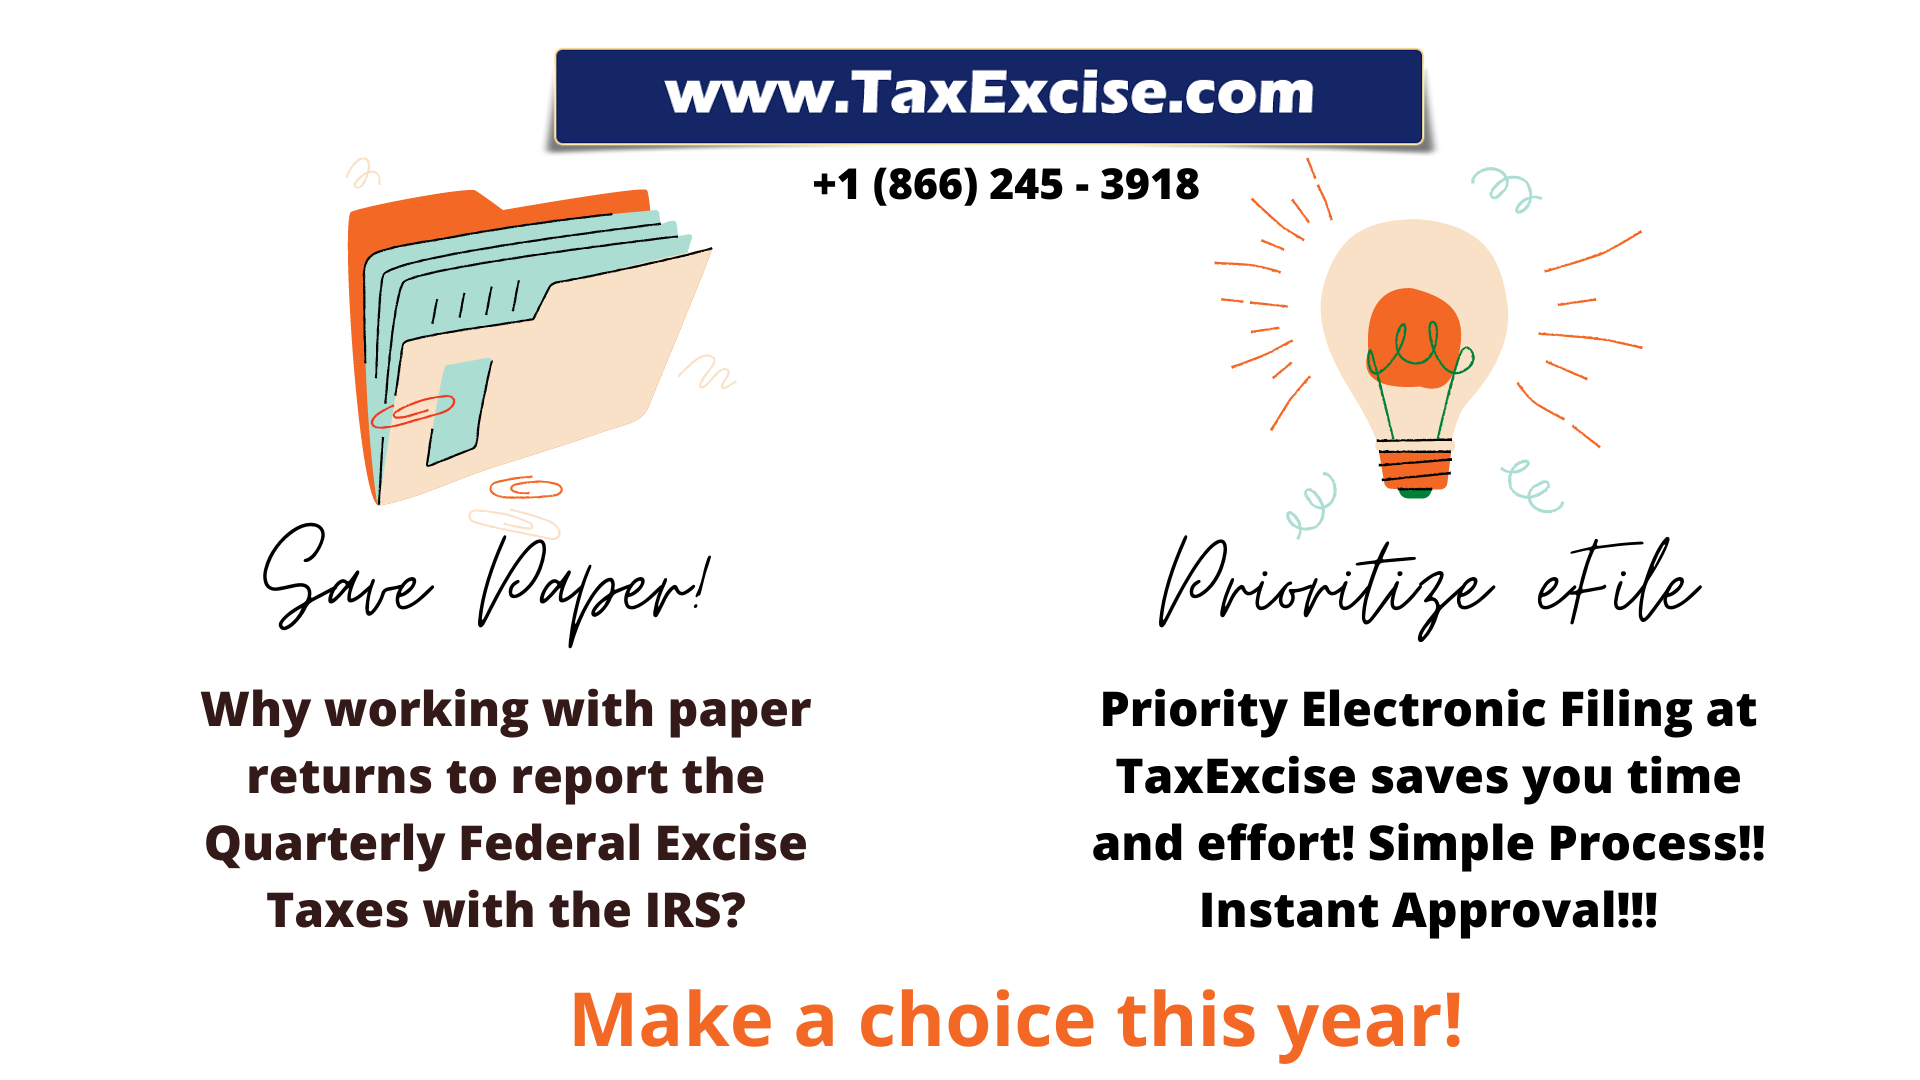 Priority eFile at TaxExcise.com